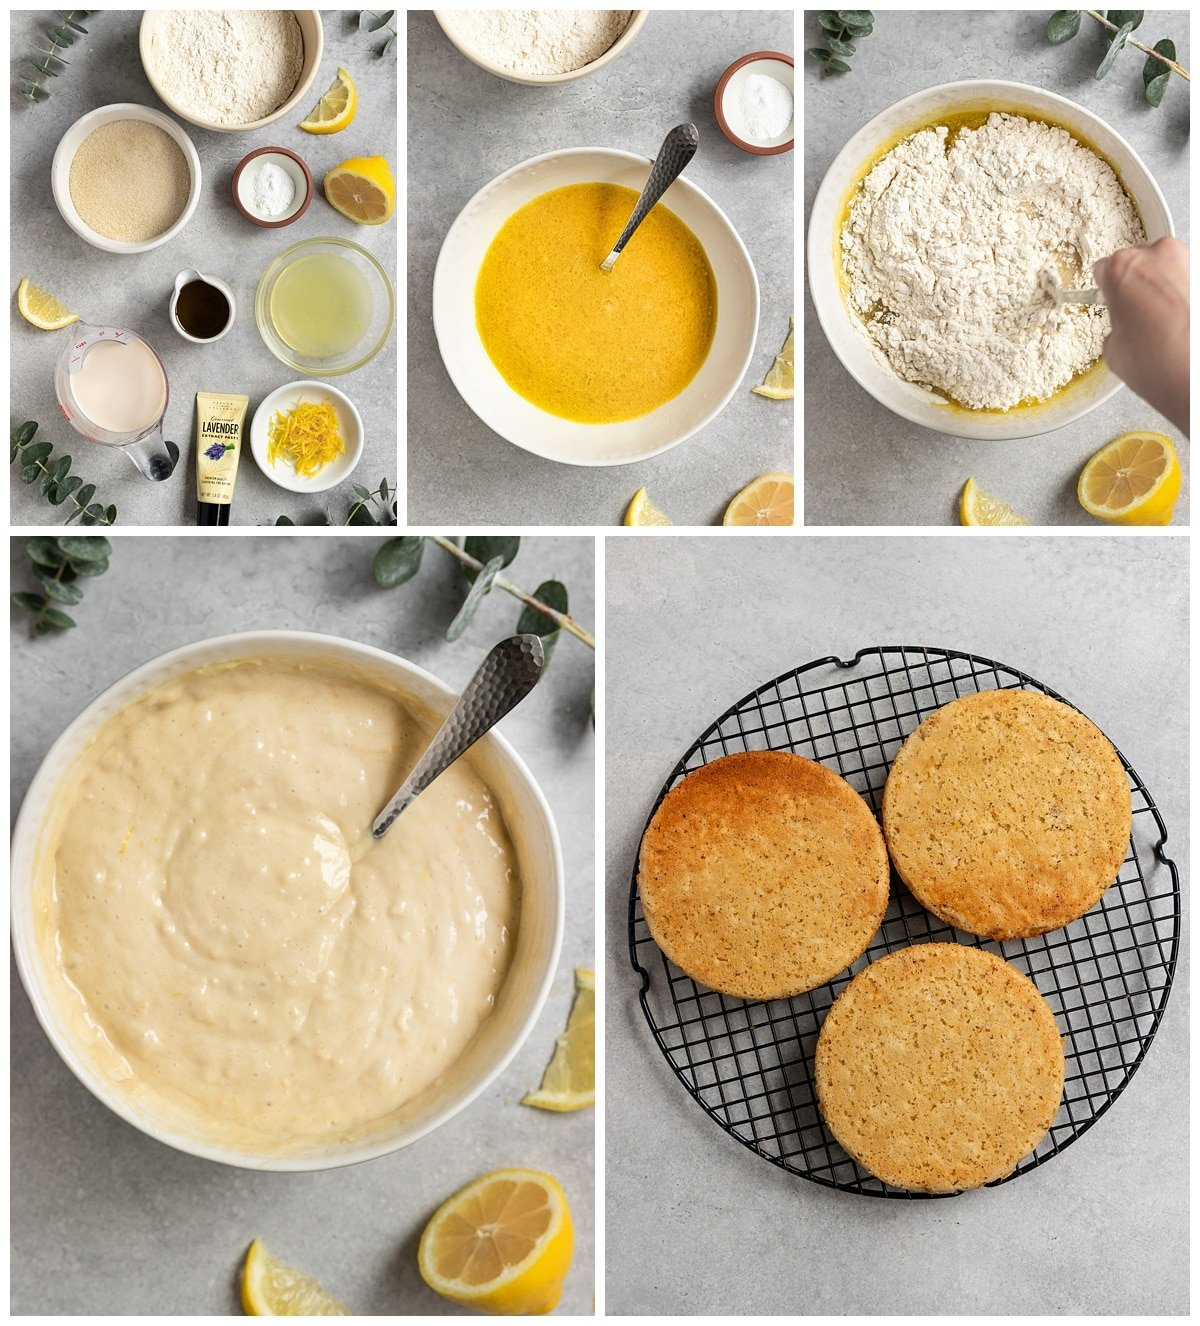 five pictures making lemon lavender cake including ingredients, making cake batter, and finished cakes on wire rack